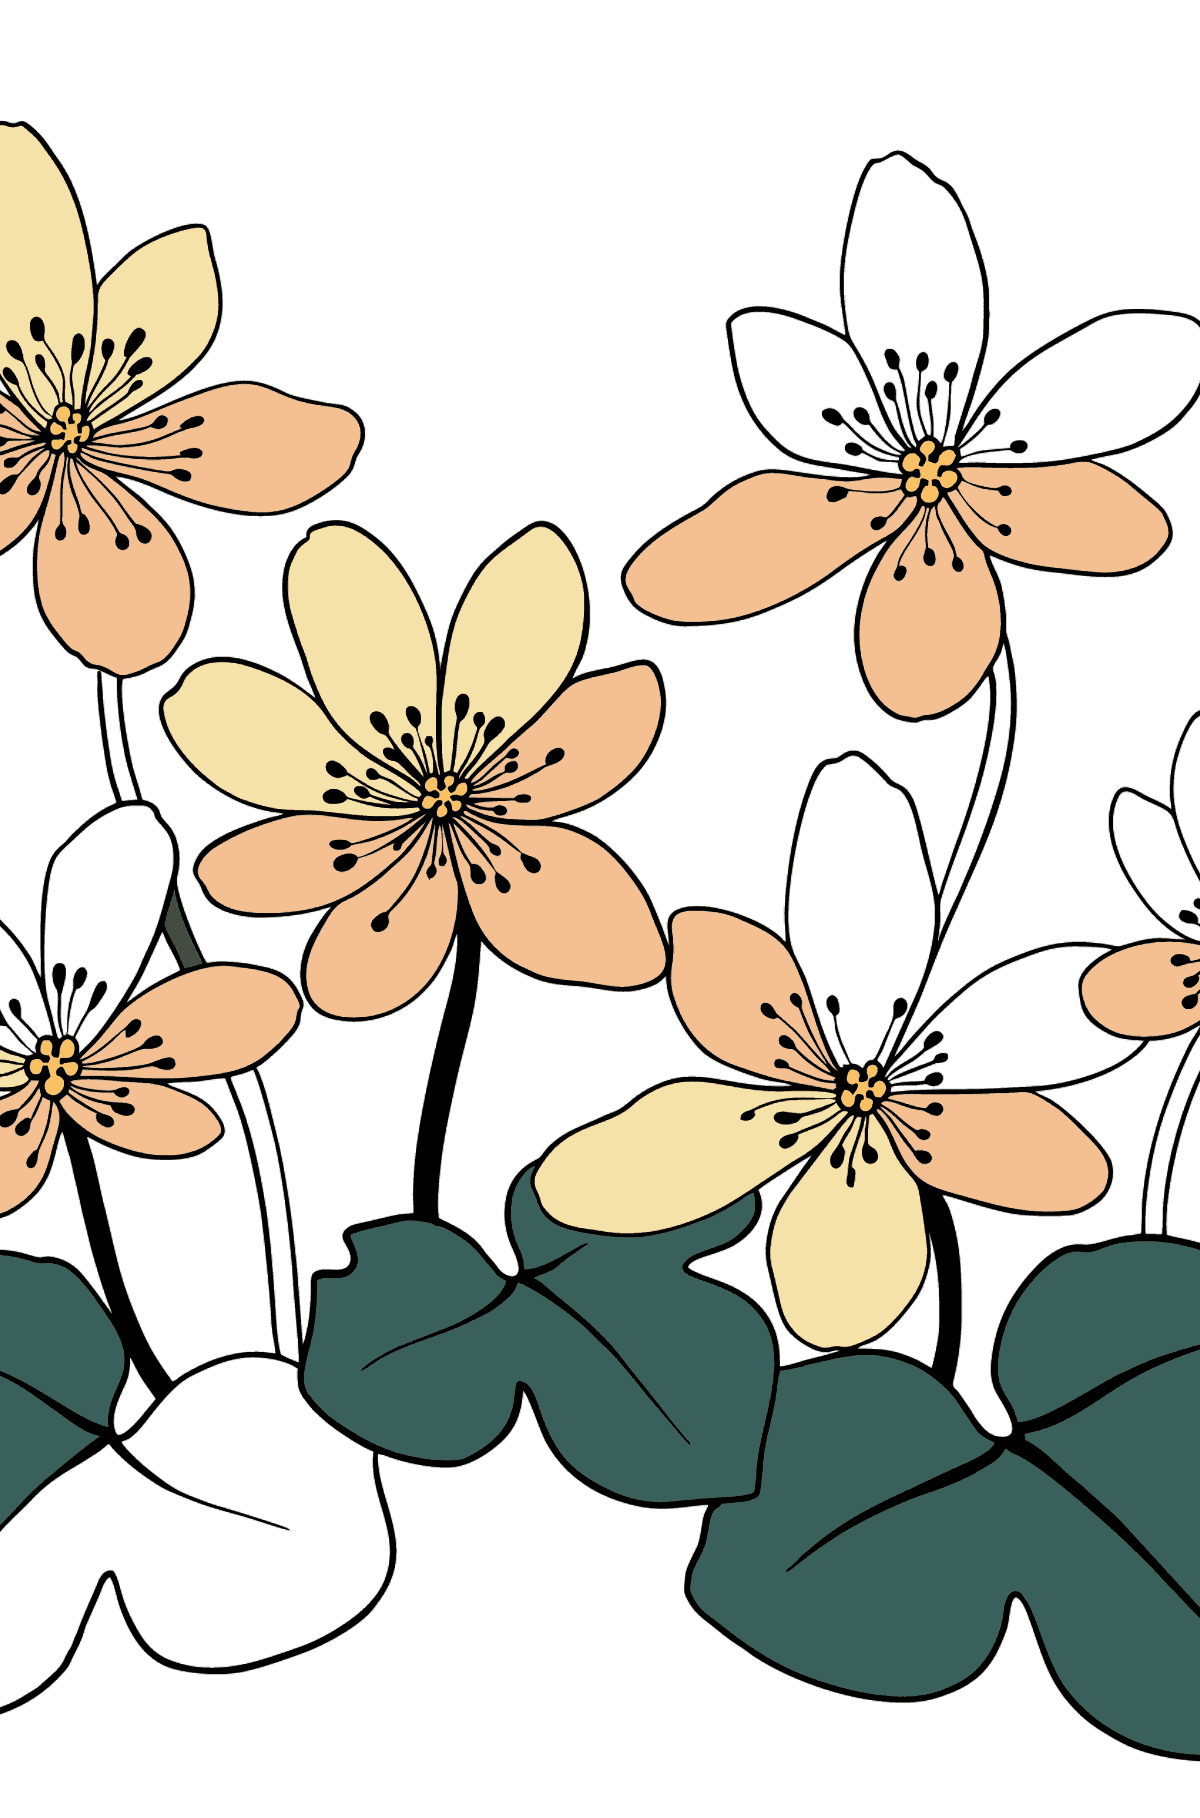 Flower Coloring Page - A Yellow and Orange Hepatica - Coloring Pages for Kids